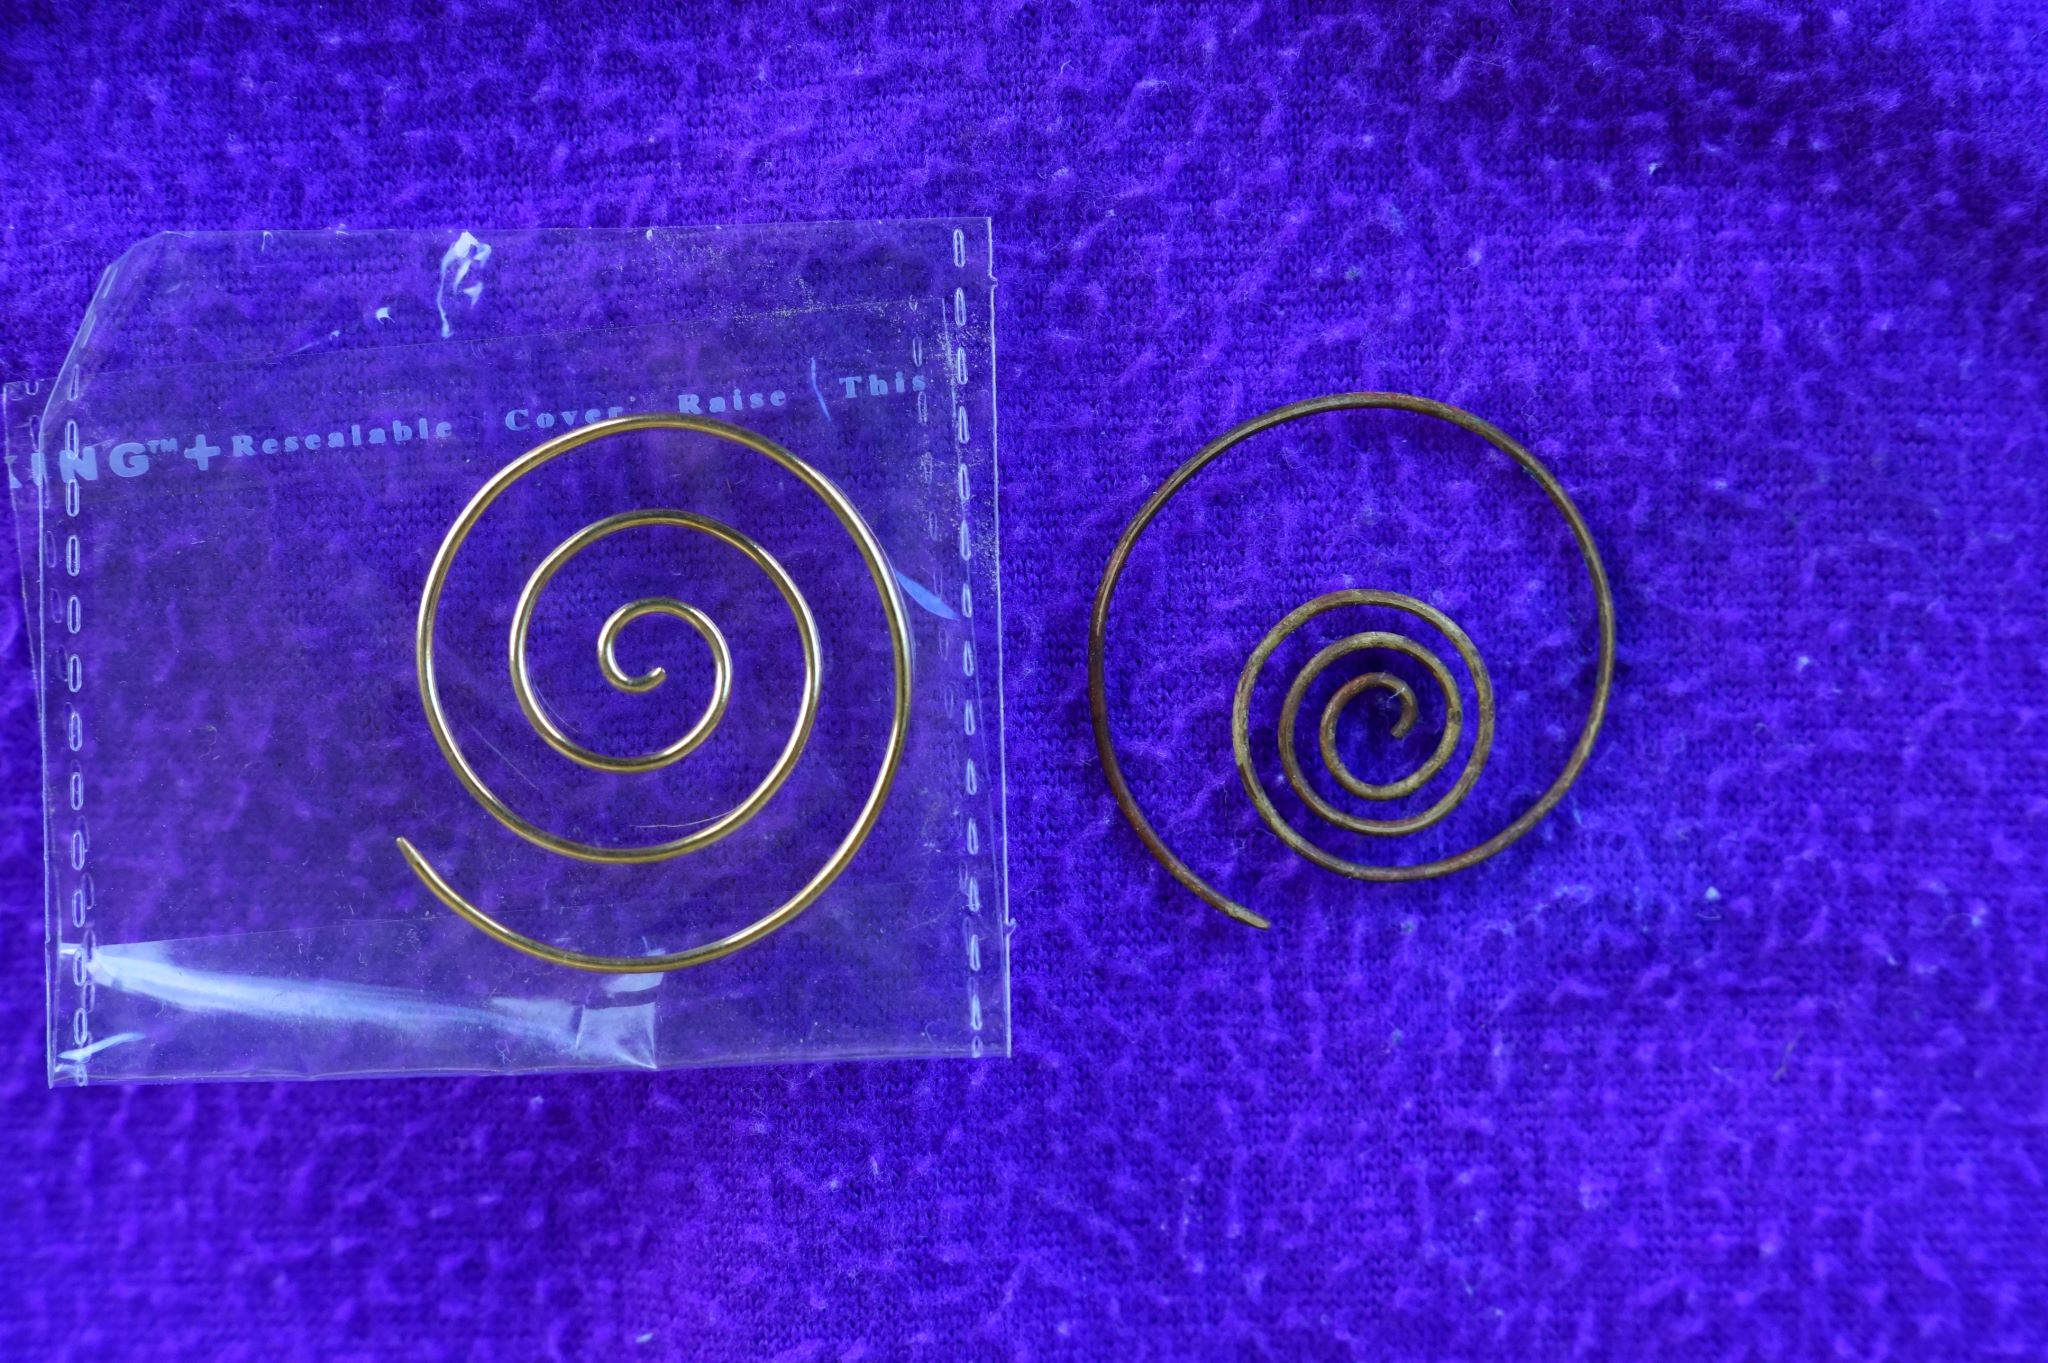 ndiana-jones-fate-of-atlantis-earring-before-after.jpg